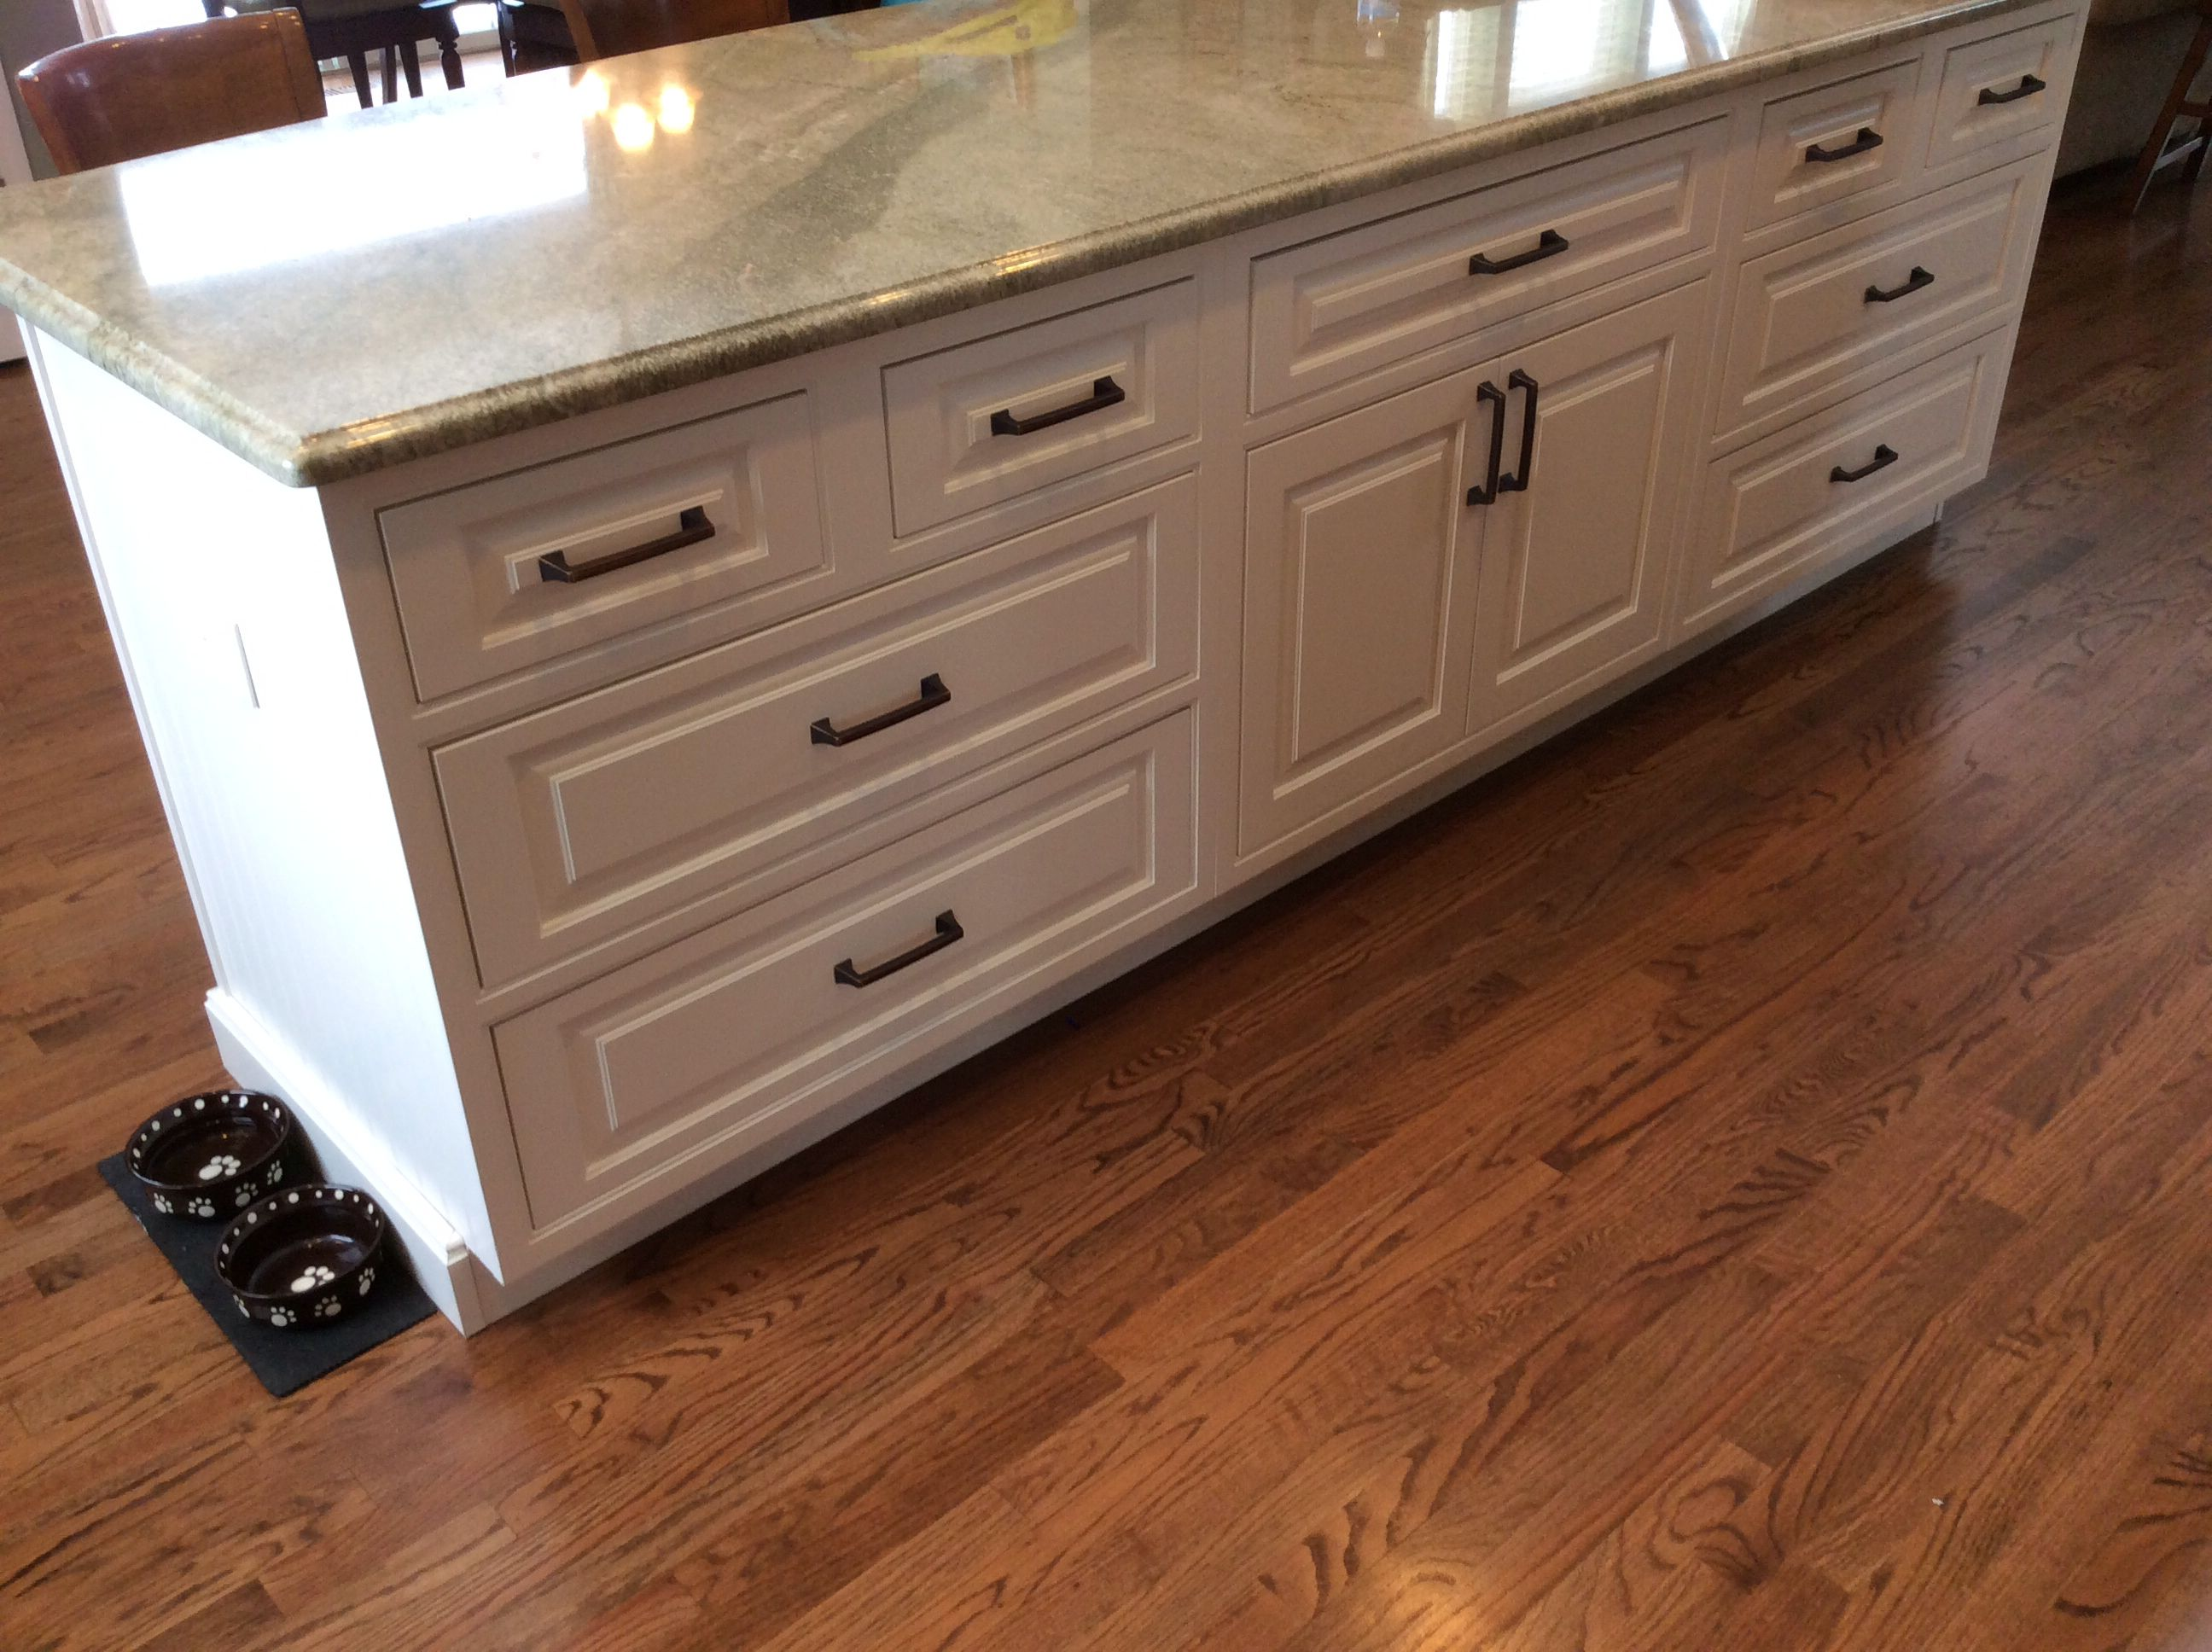 shiloh oxford soft white beaded inset cabinets